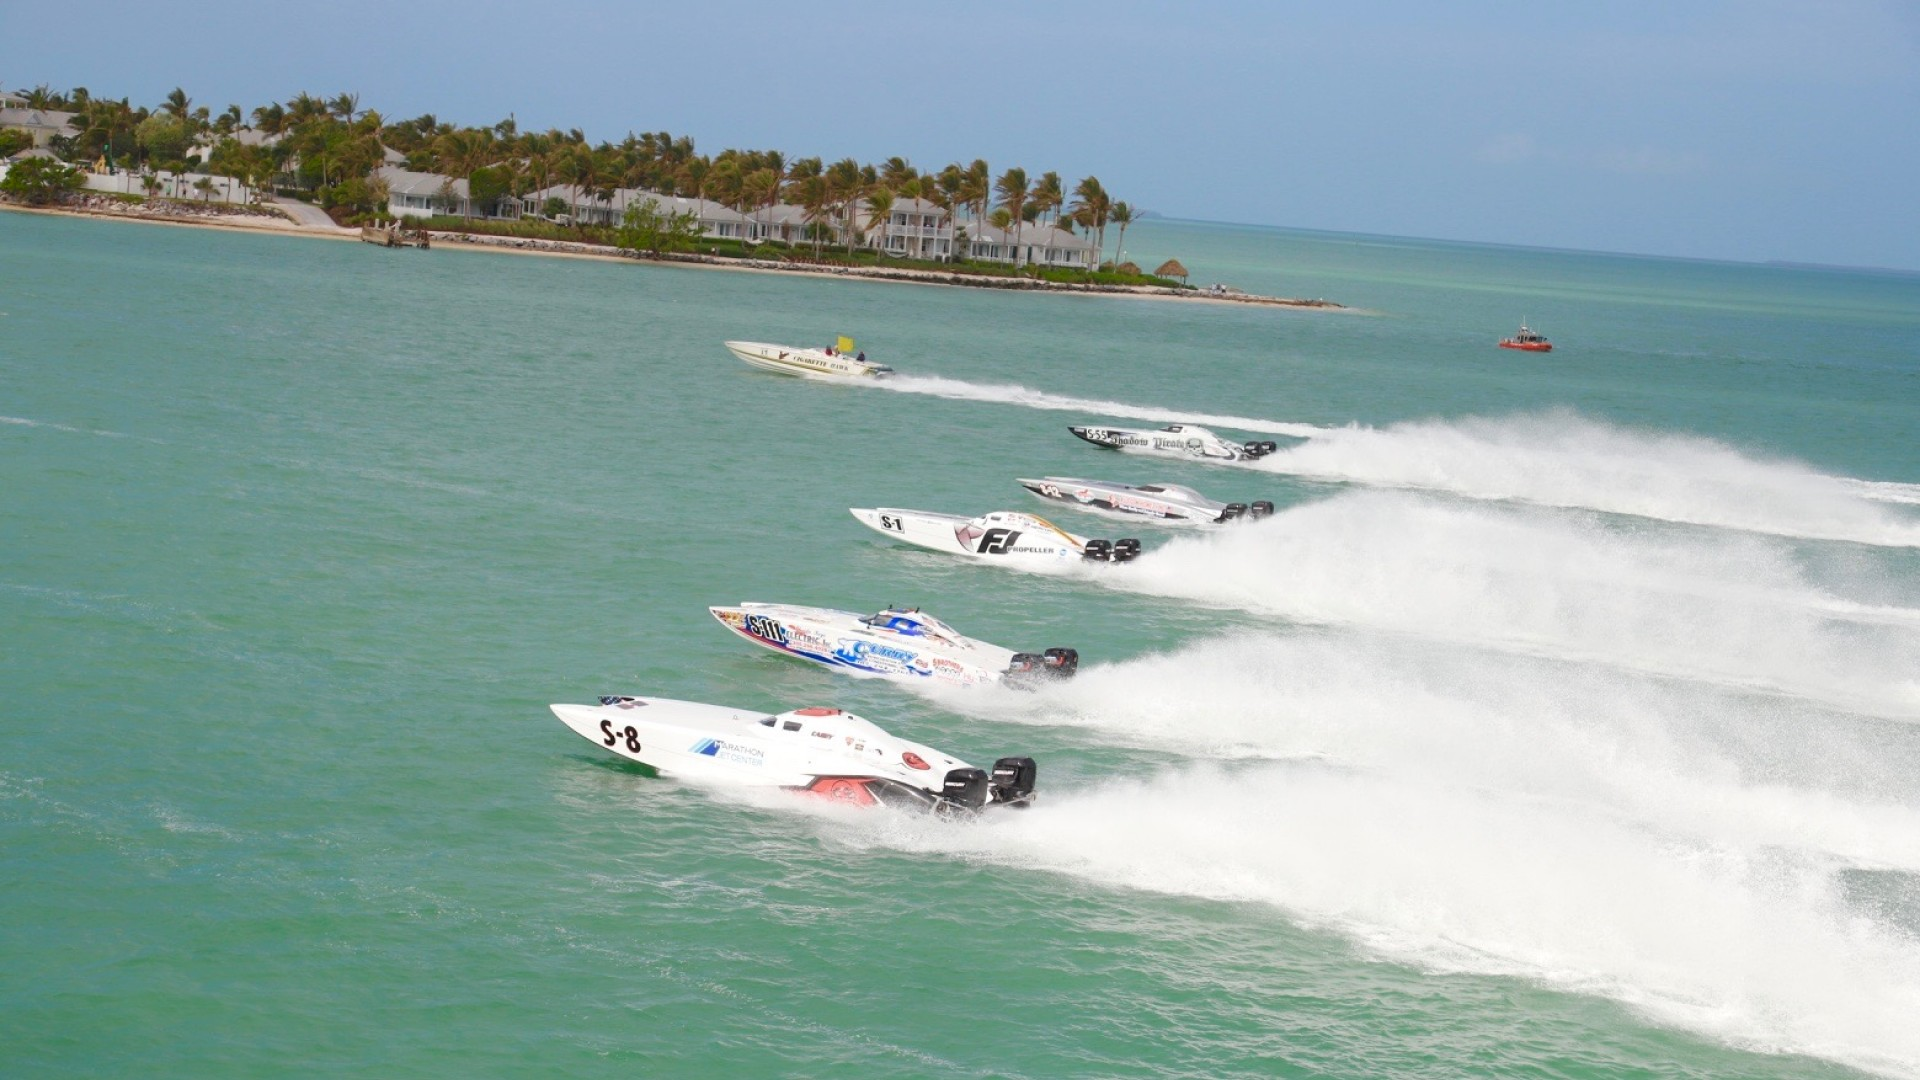 38th Annual Key West Superboat International World Championship